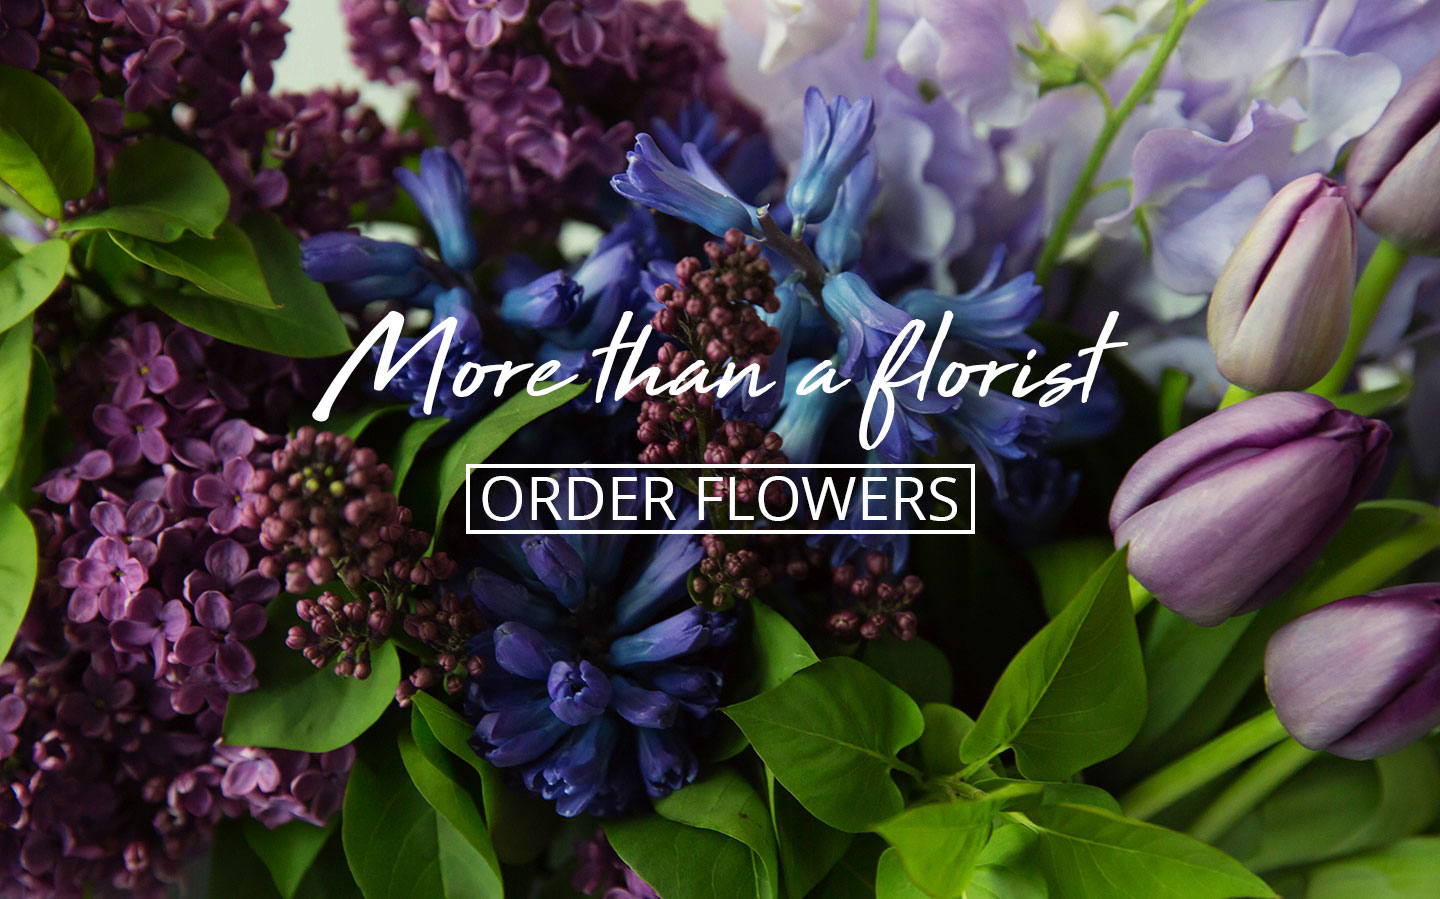 More than a florist